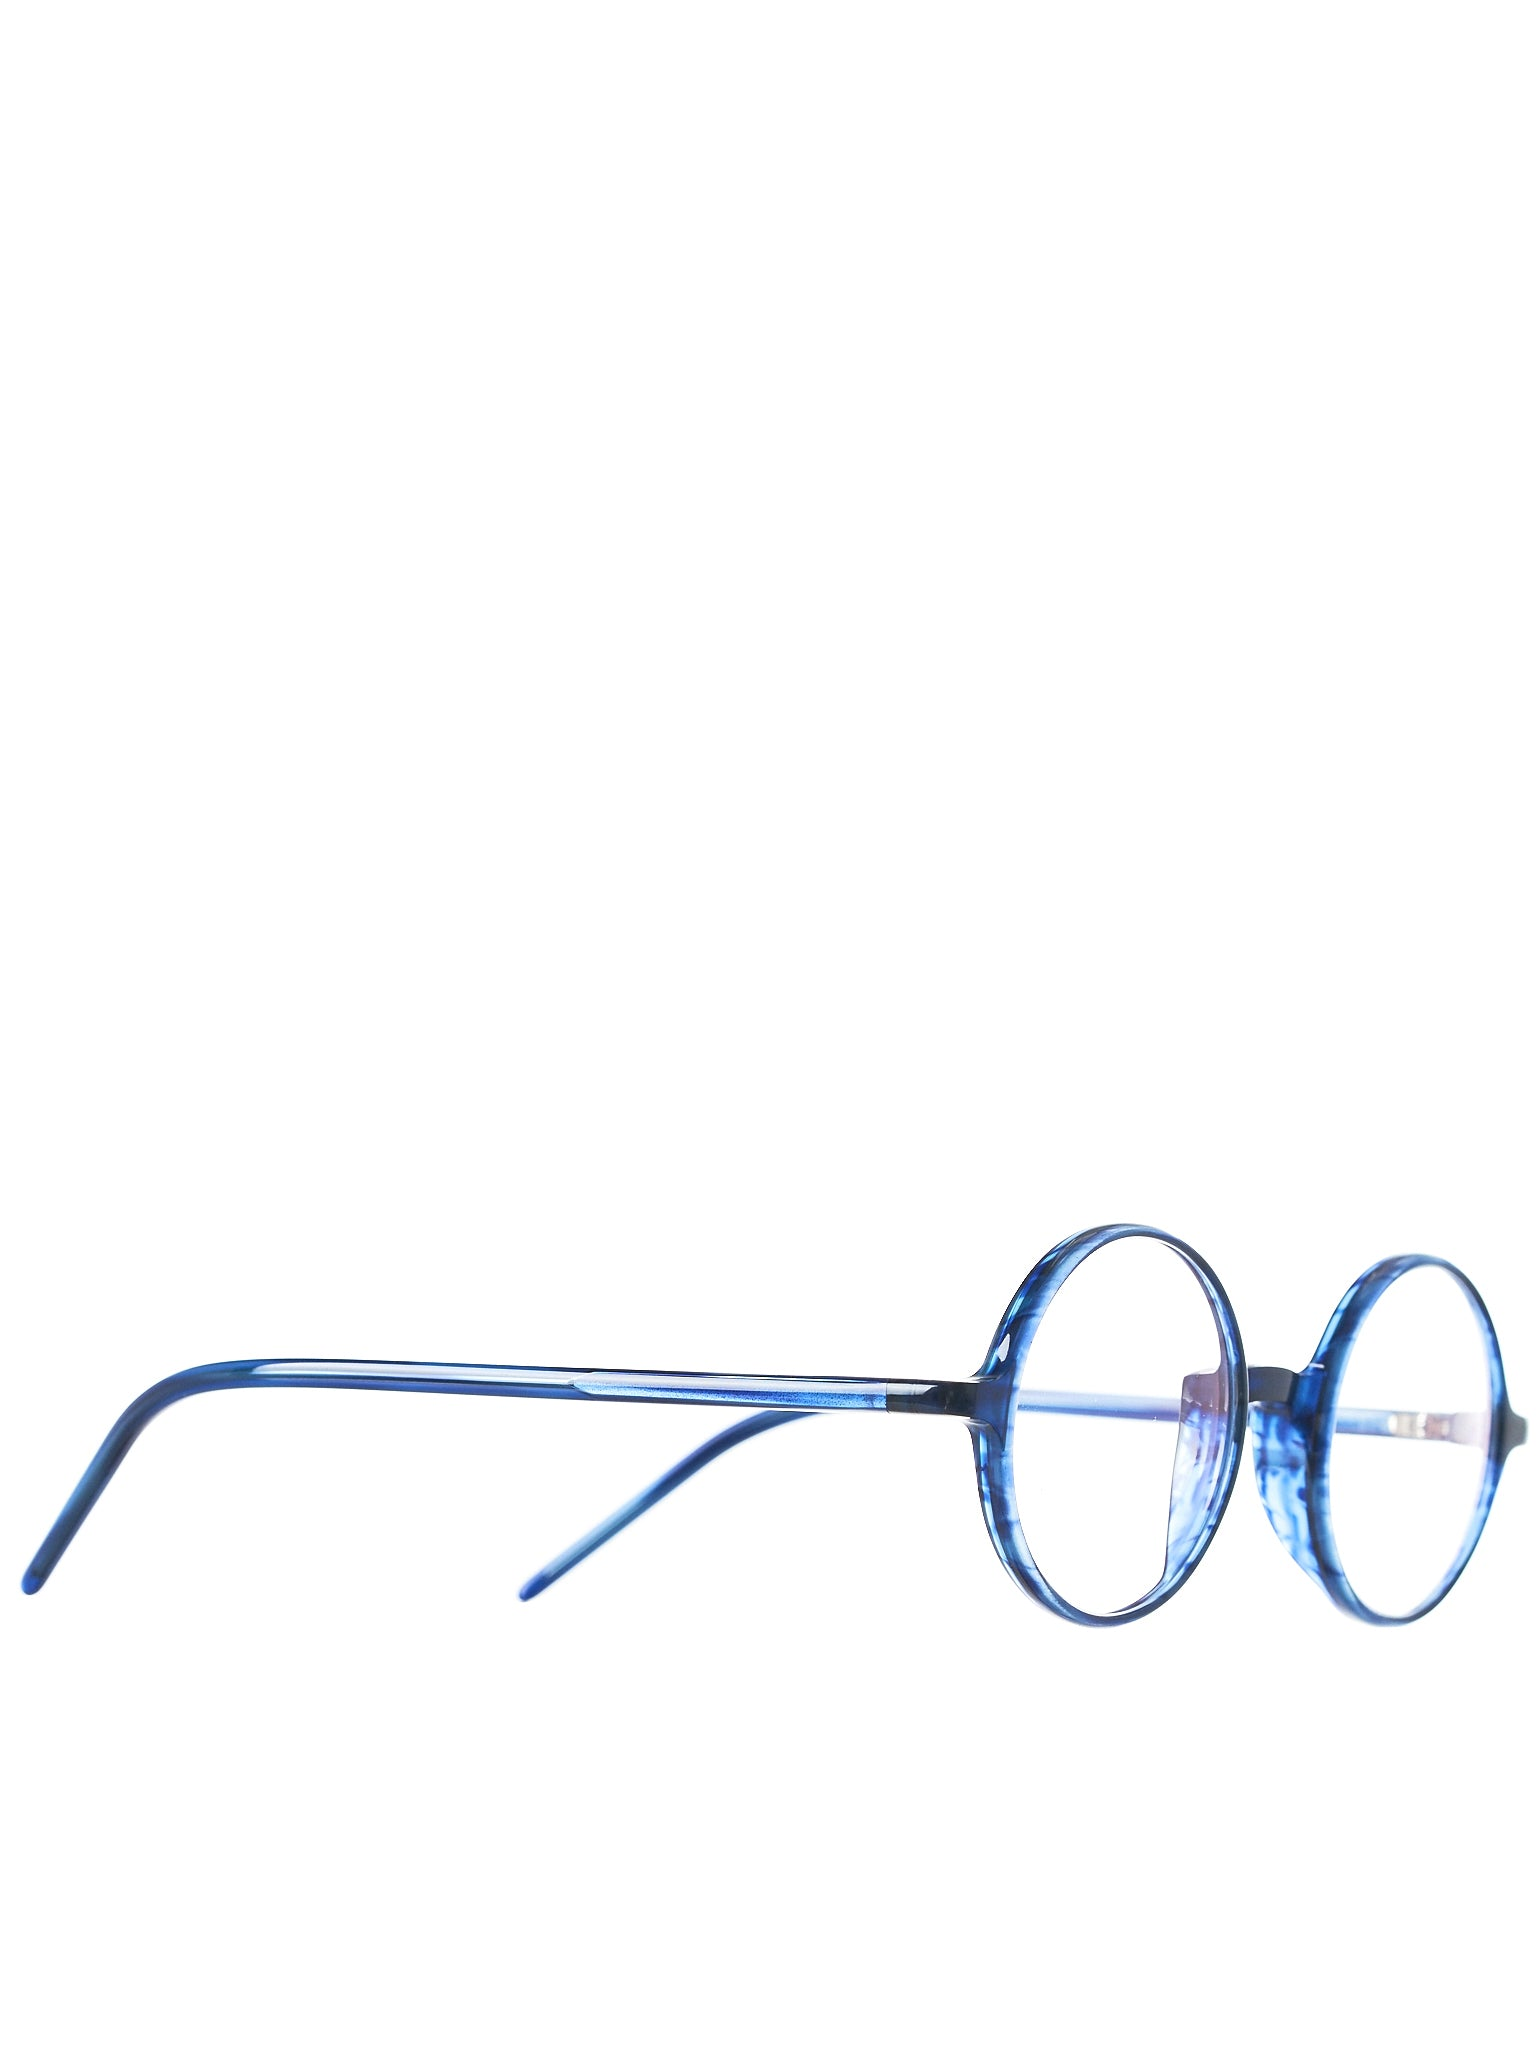 NAMIHANA Round-Frame Glasses (NAMIHANA-CR-NAVY-WAVE-CLEAR)